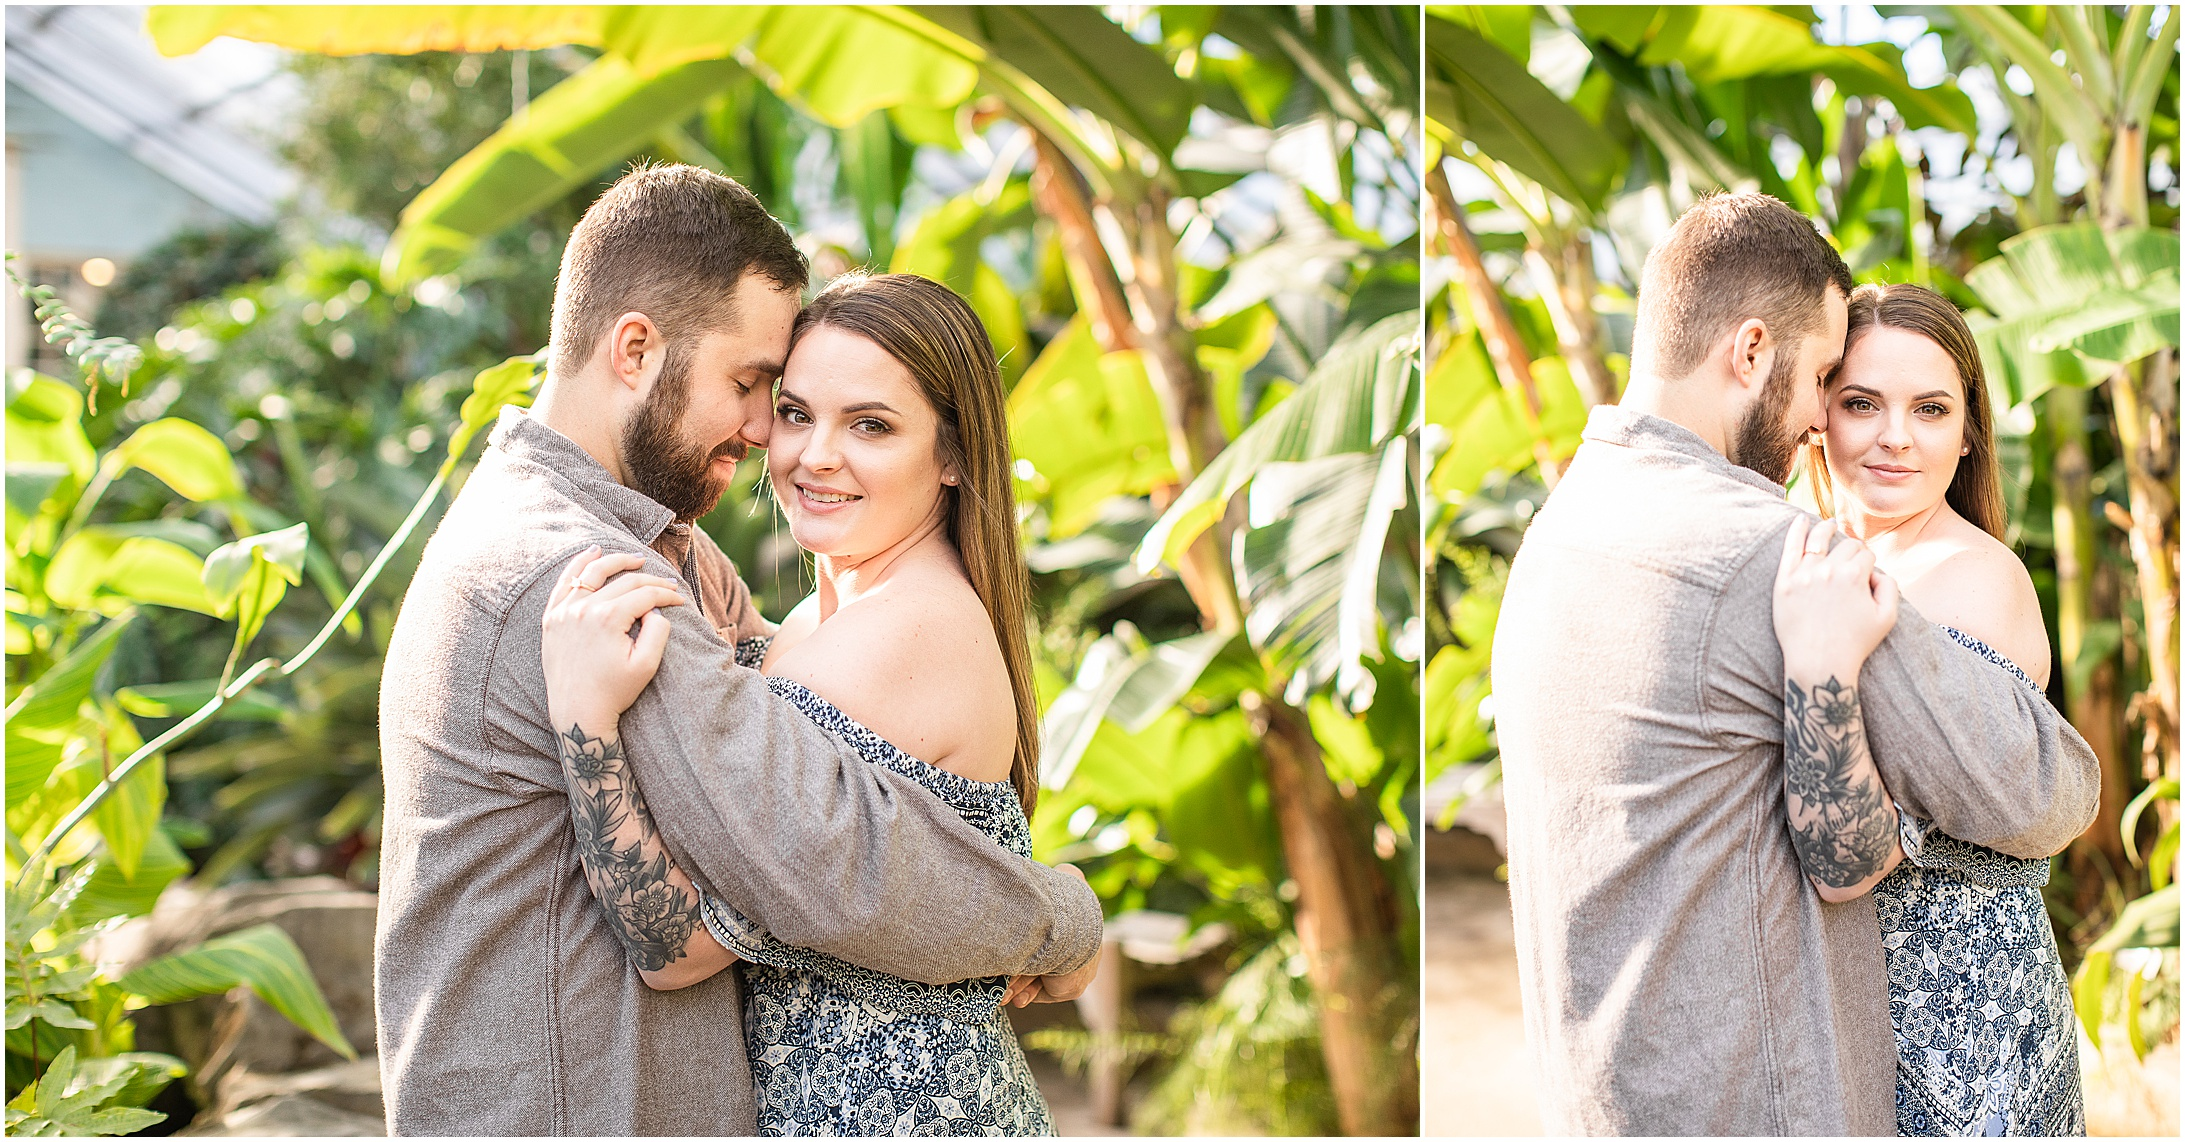 Rawlings-Conservatory-Engagement-Photos_0283.jpg